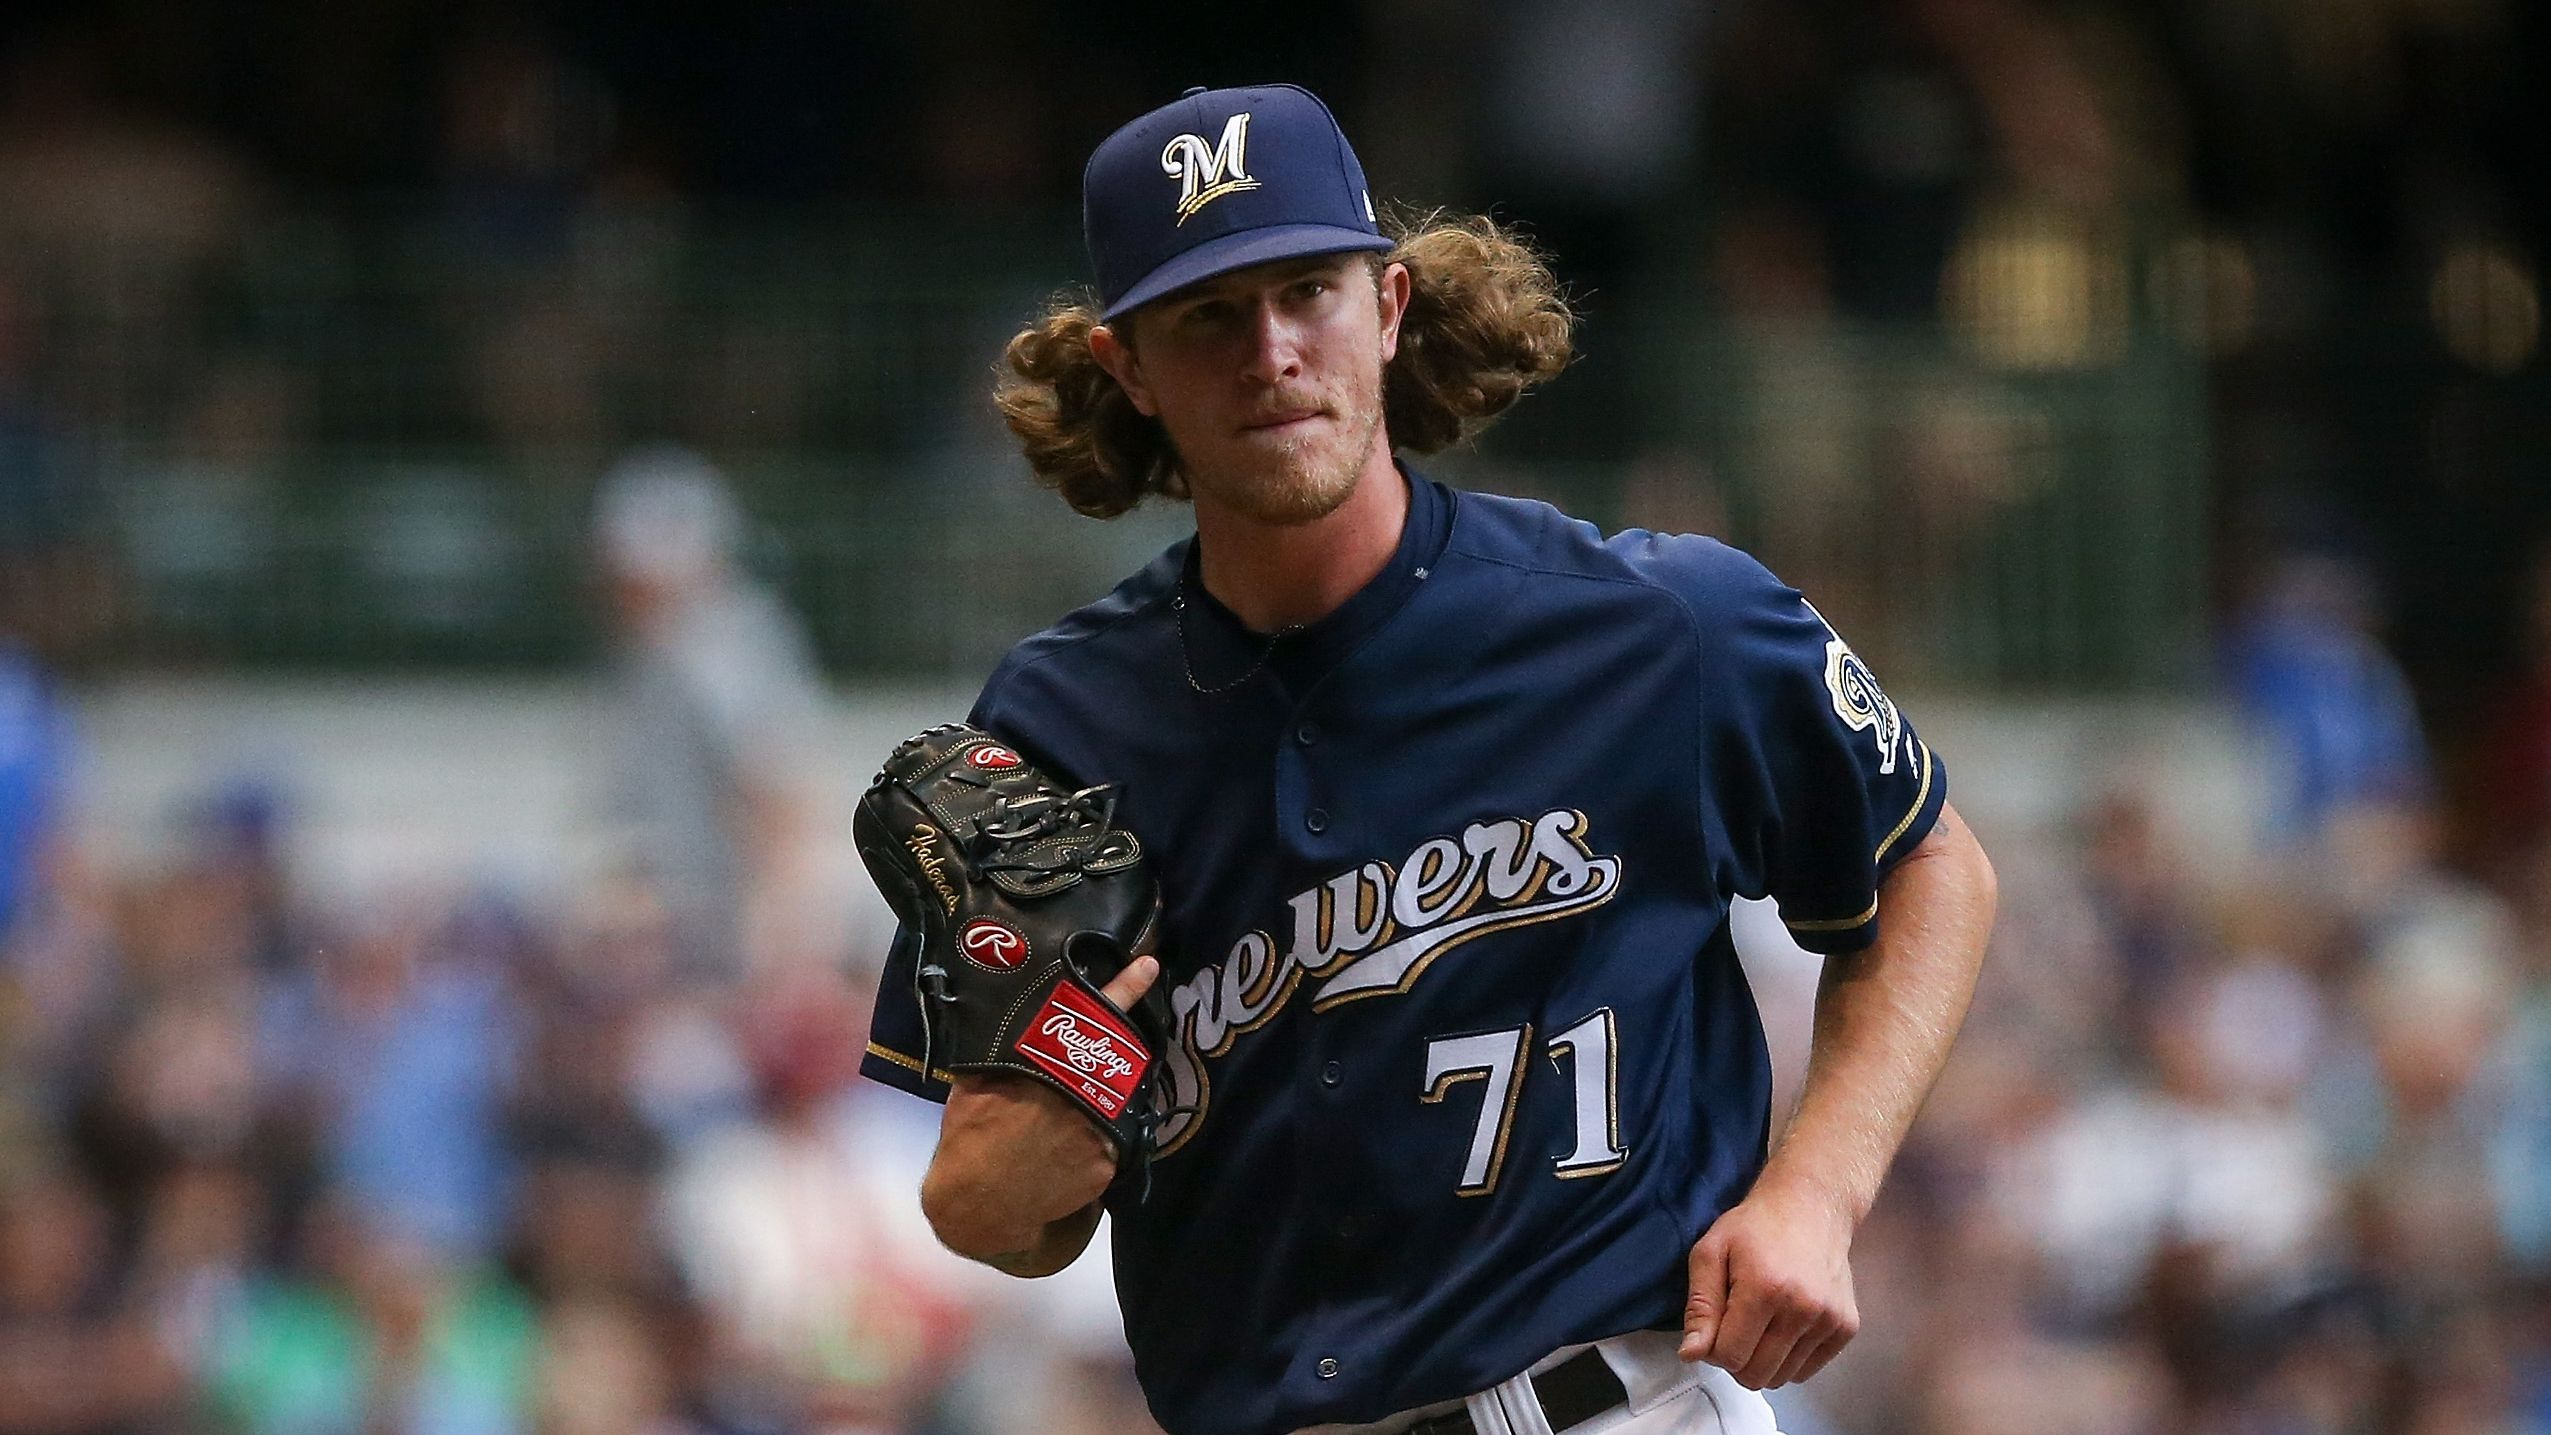 048389b87 Brewers Pitcher Josh Hader Apologizes for Homophobic and Racist Tweets